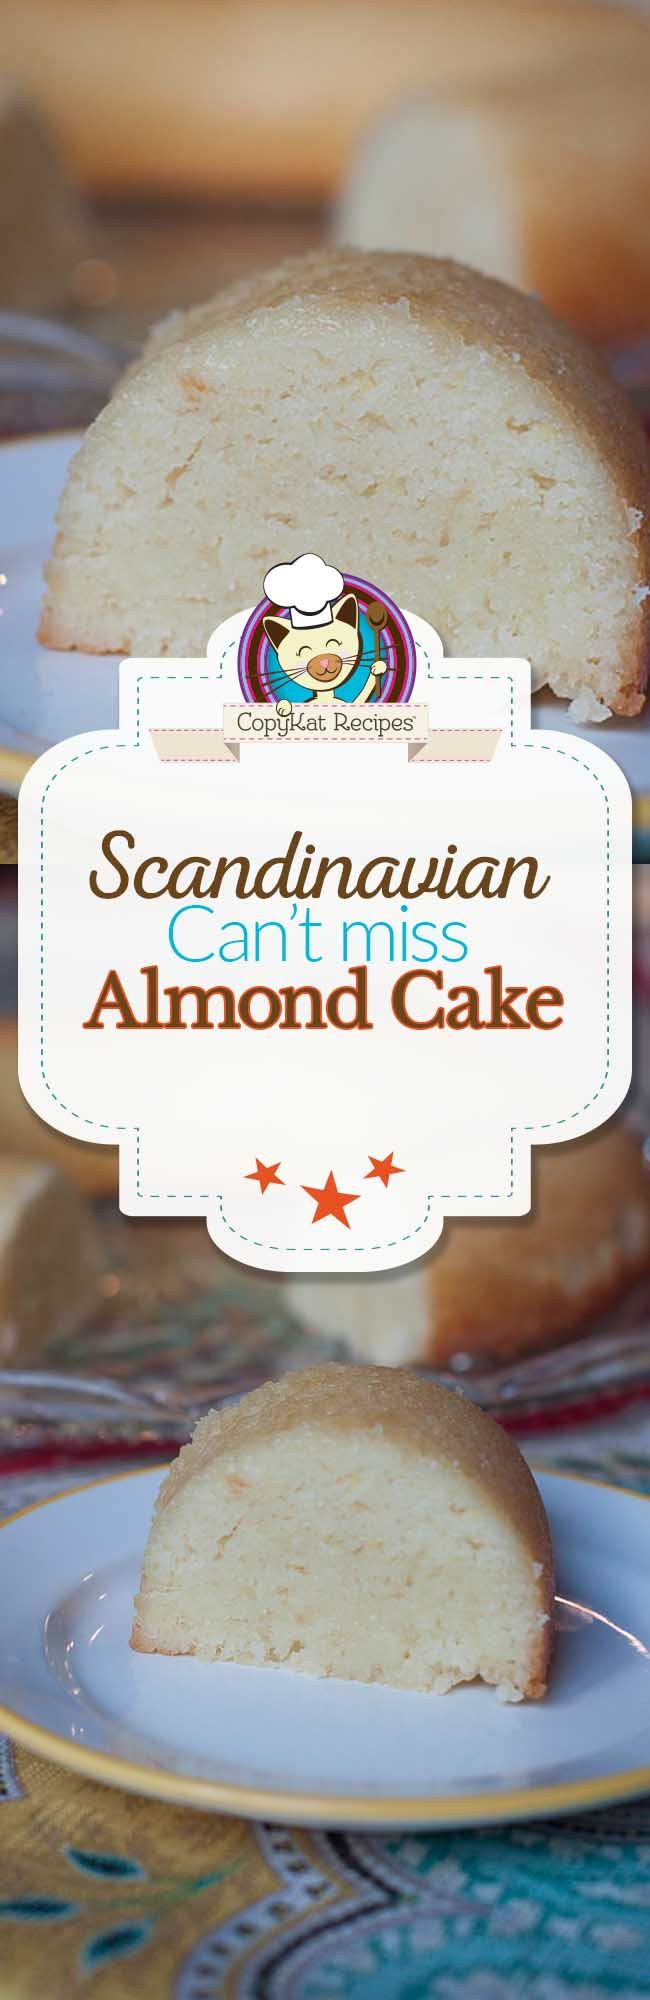 Scandinavian Almond Cake That Is Simply Irrestiable Recipe Almond Cakes Almond Recipes Desserts